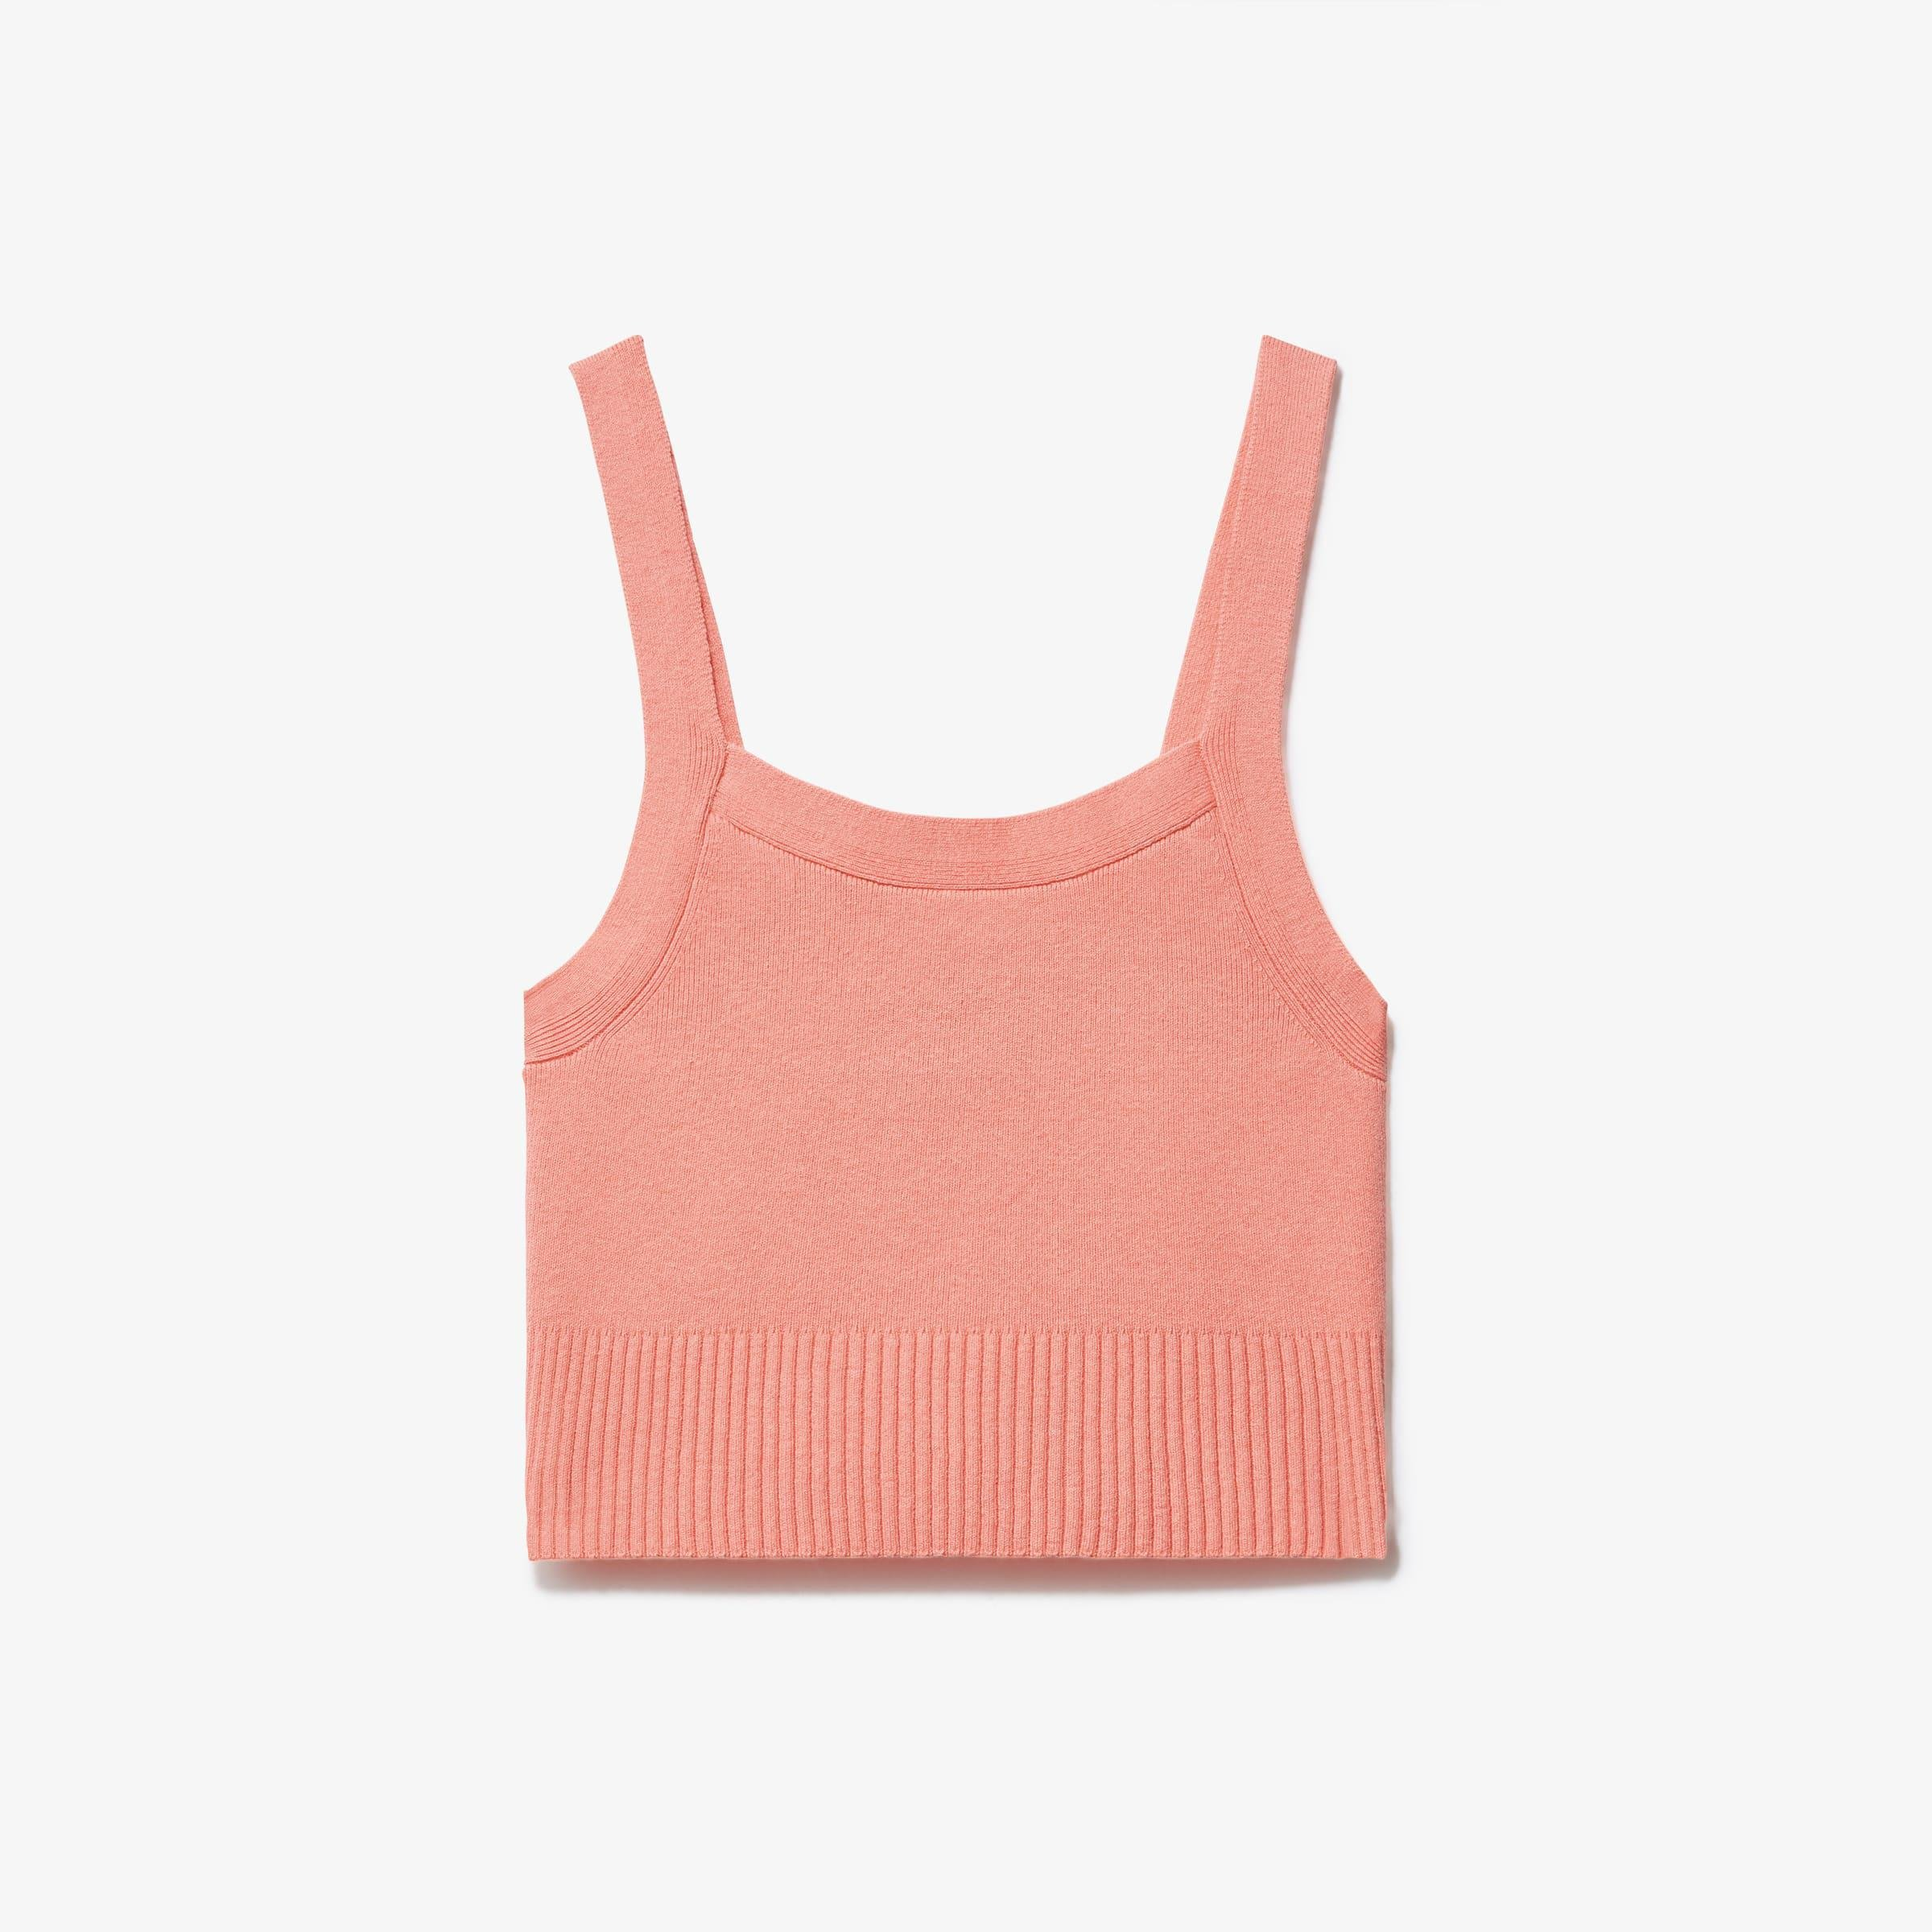 The Cropped Sweater Cami 4